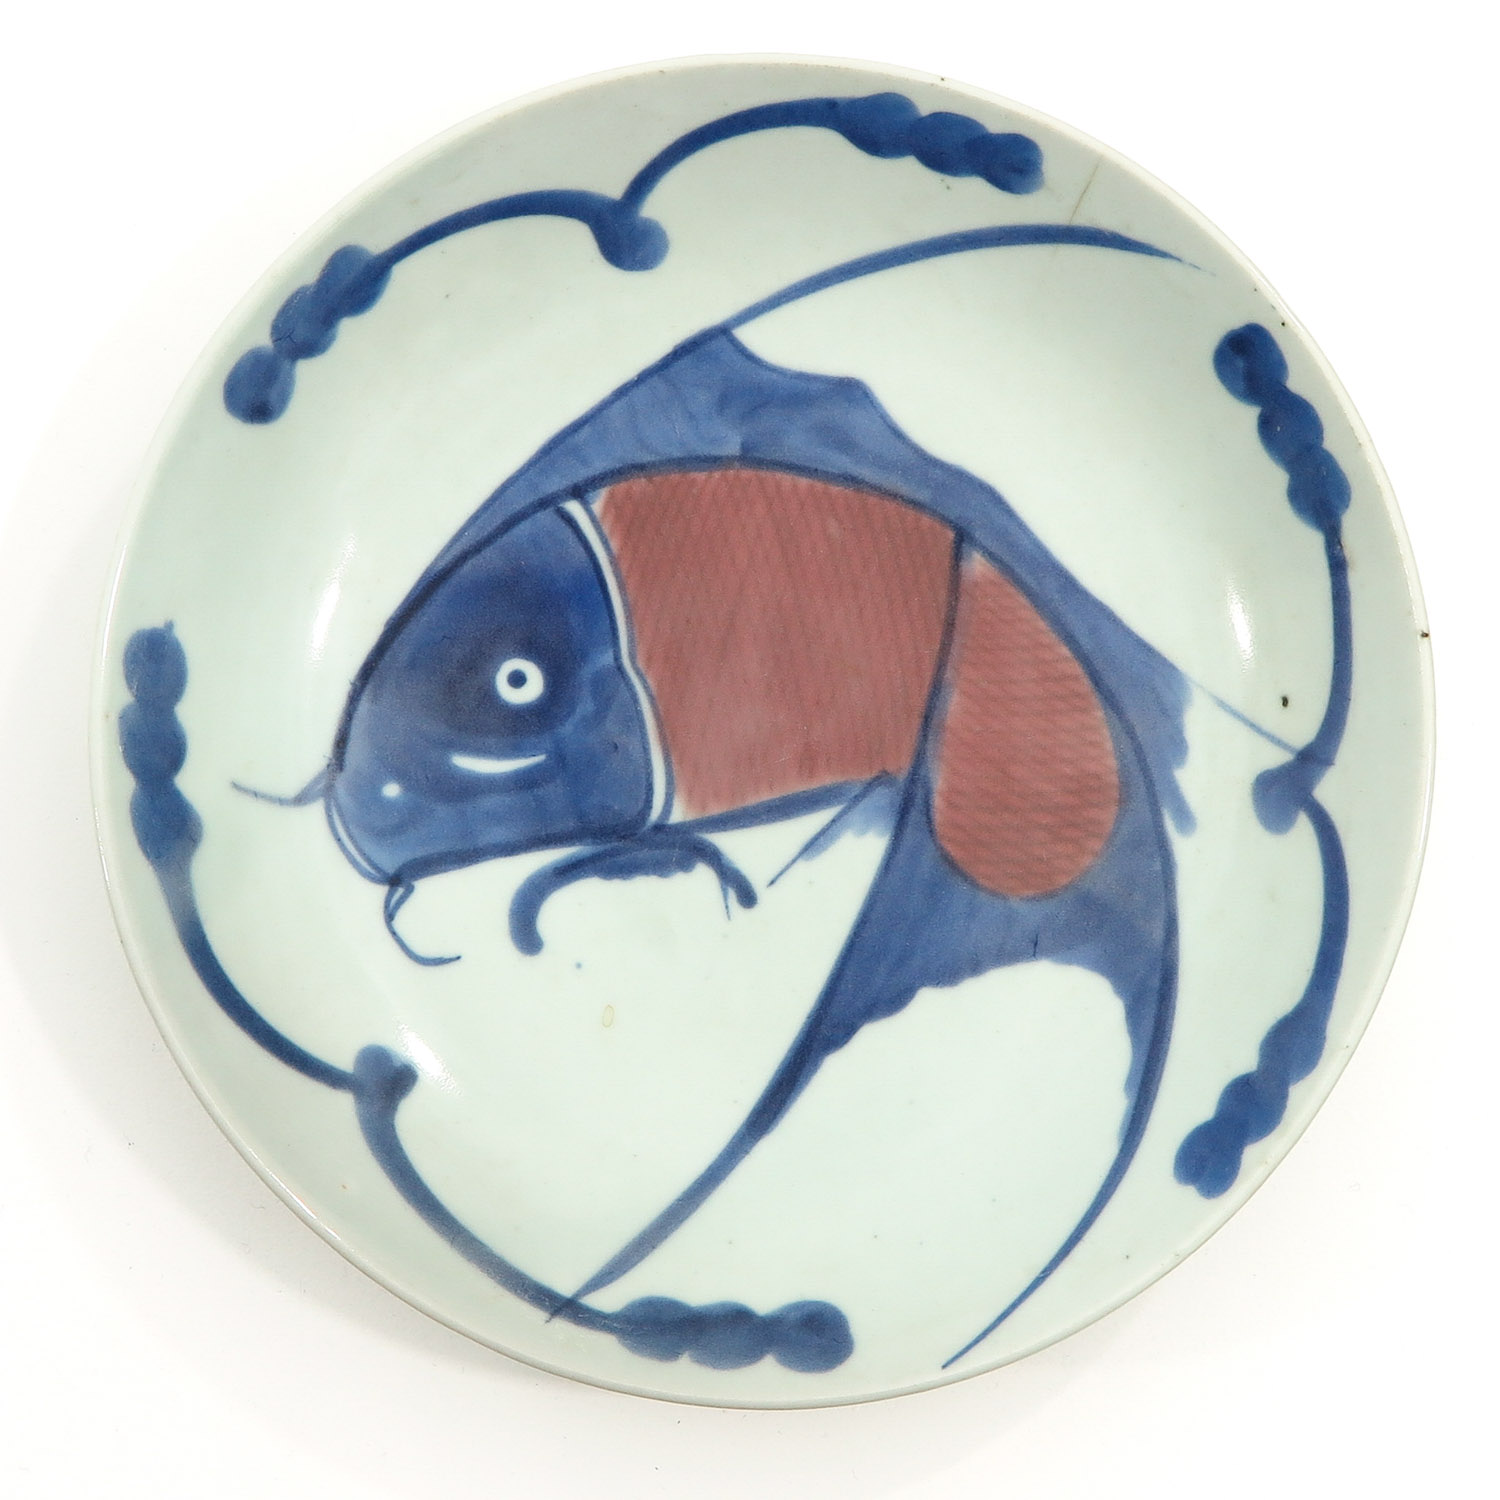 A Collection of 3 Stoneware Plates - Image 7 of 10